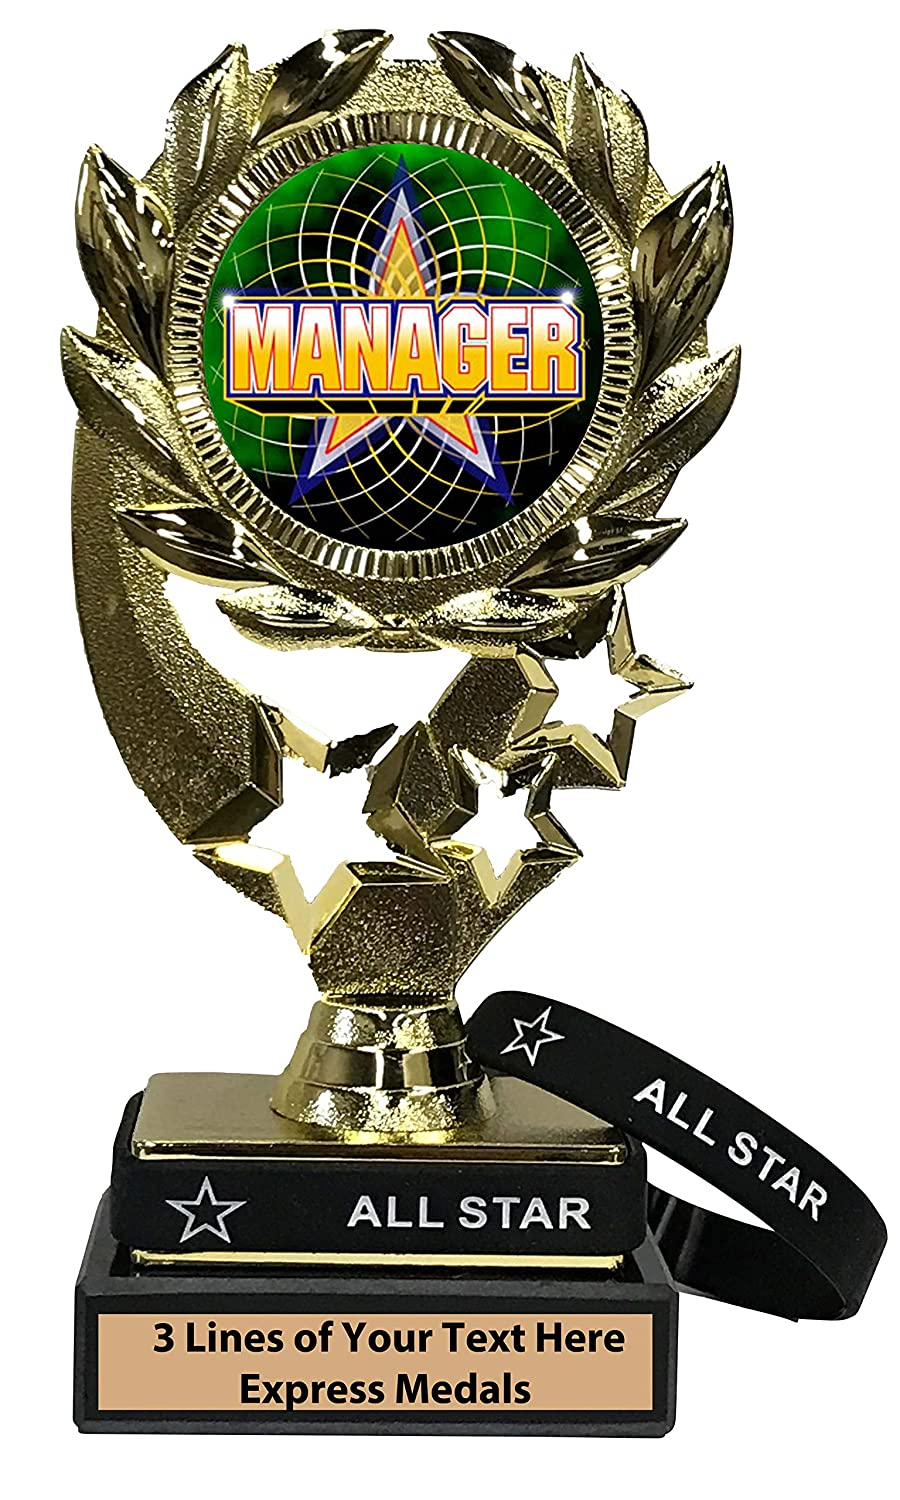 Express Medals Manager Trophy with Removable Wearable All Star Wrist Band Marble Base and Personalized Engraved Plate